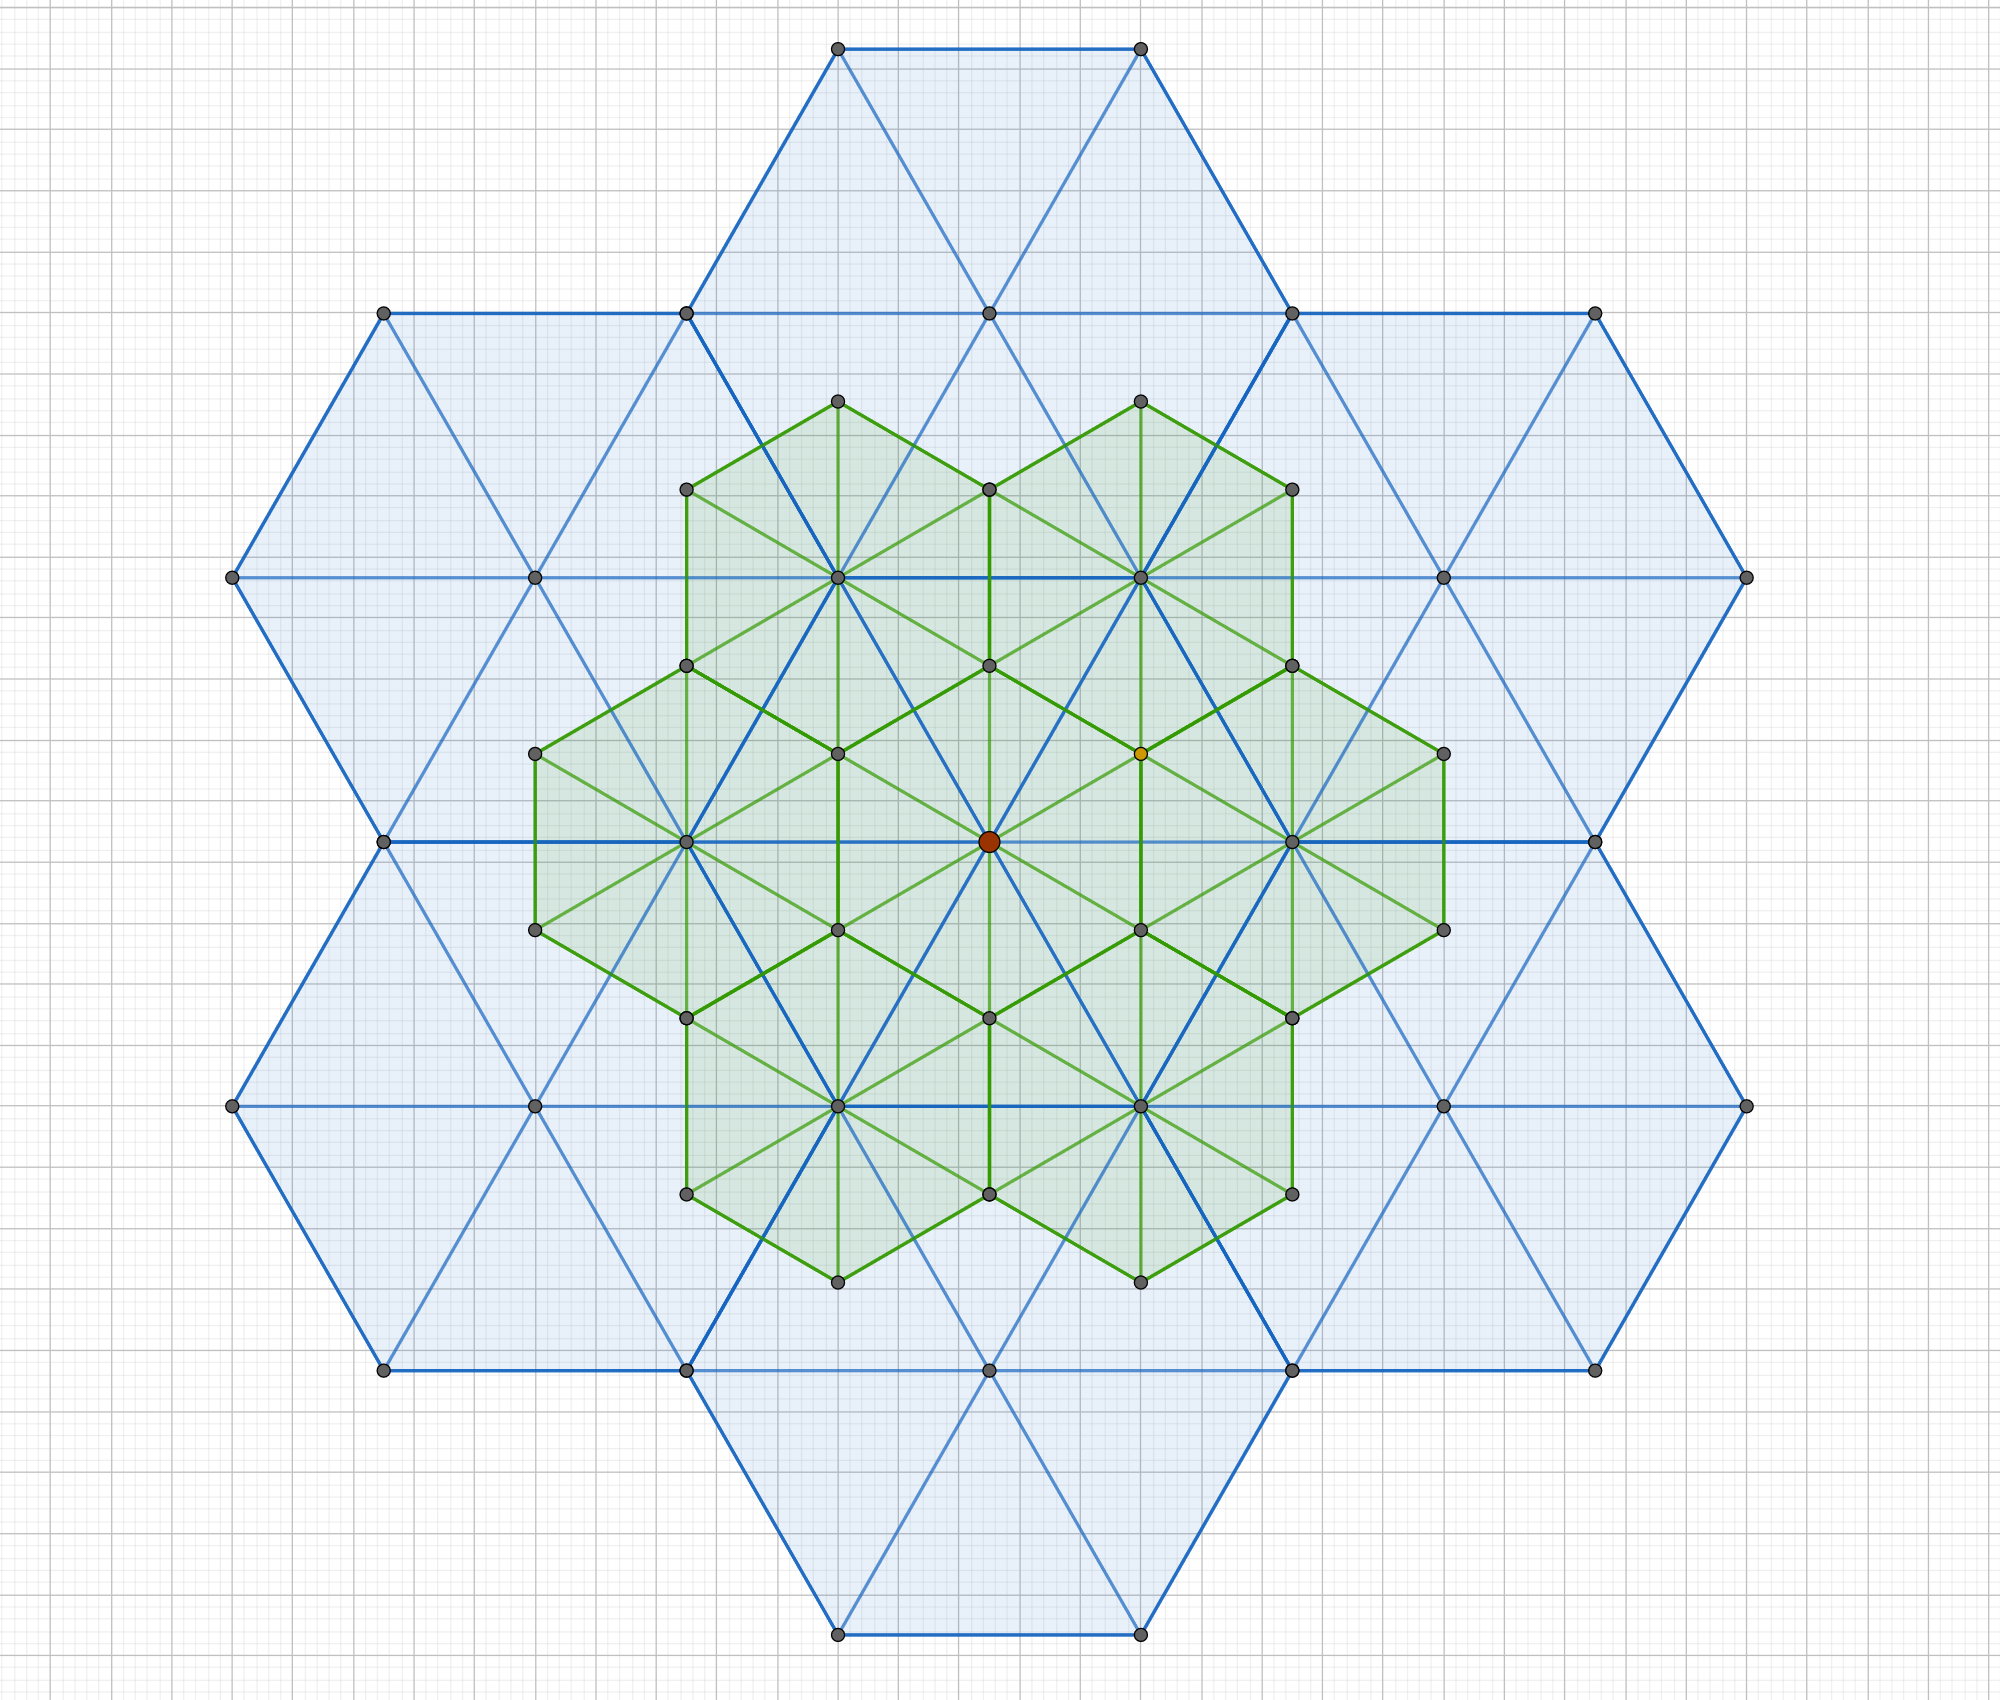 hexagons tiling on icosahedron faces